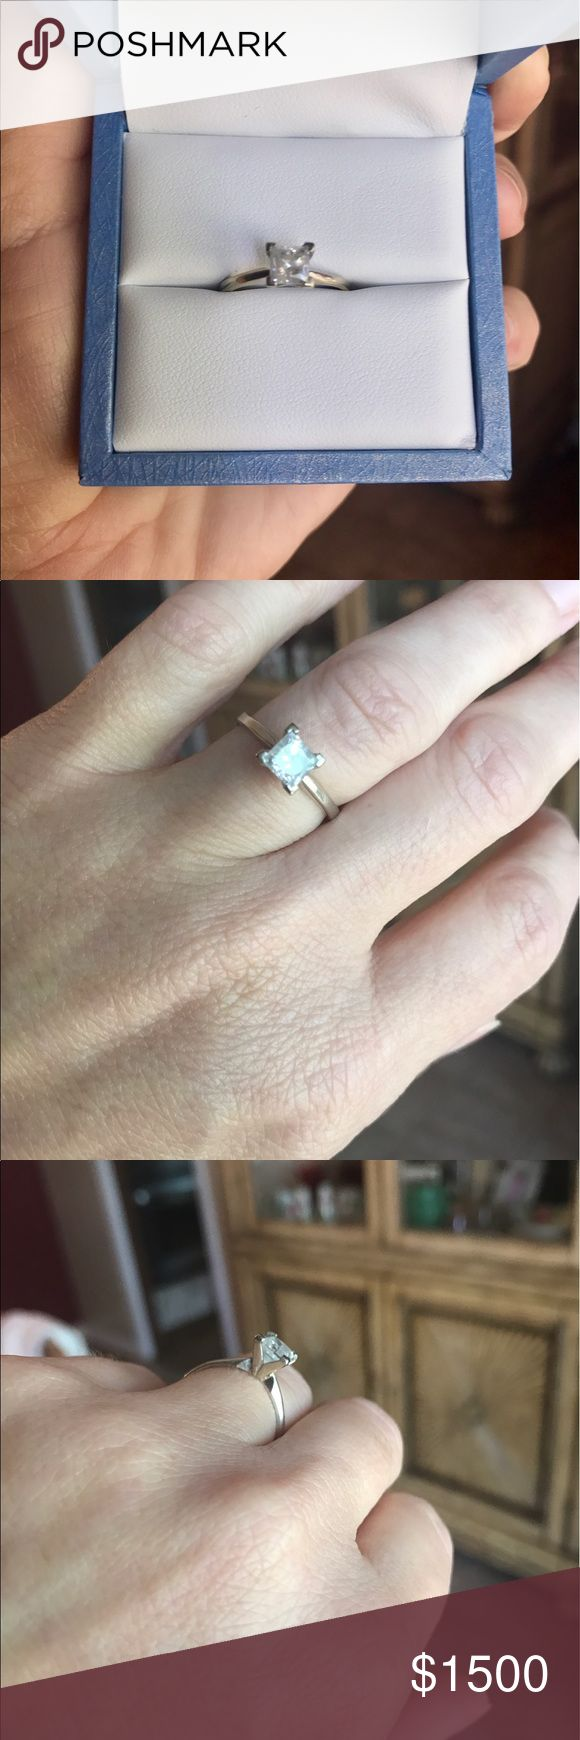 Princess Cut Diamond Solitaire Ring 1 Karat princess cut diamond solitaire ring with appraisal. White Gold size 7 Jewelry Rings